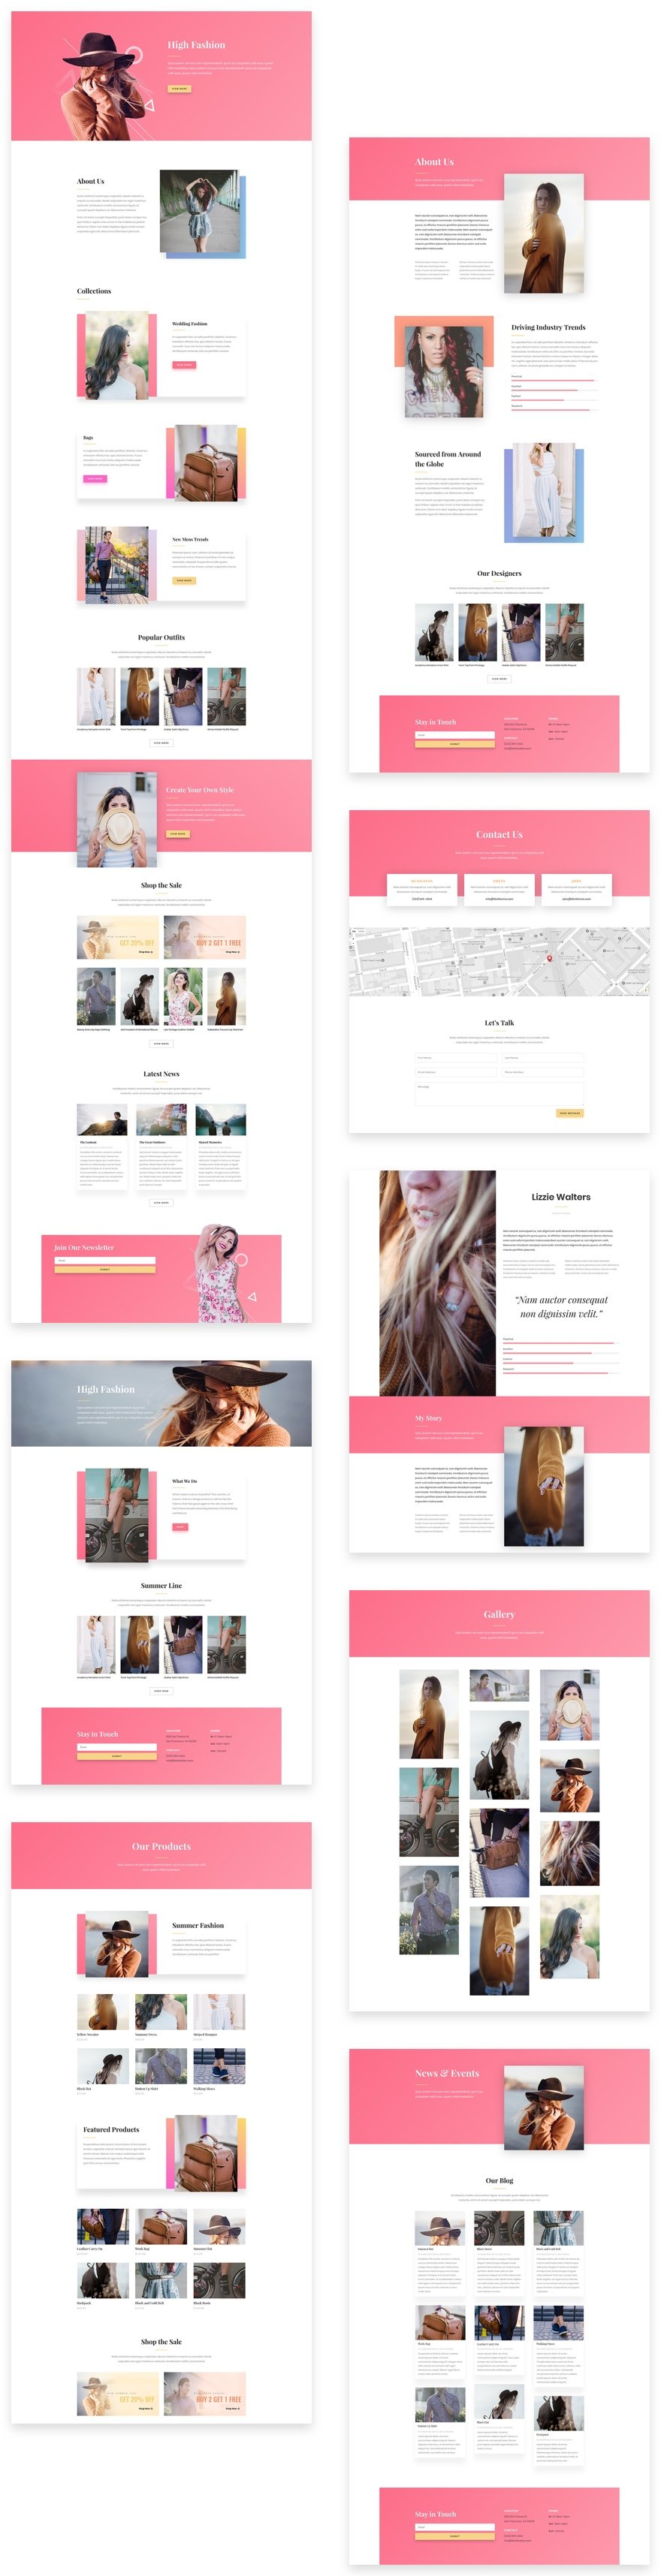 divi-fashion-layout-pack-grid